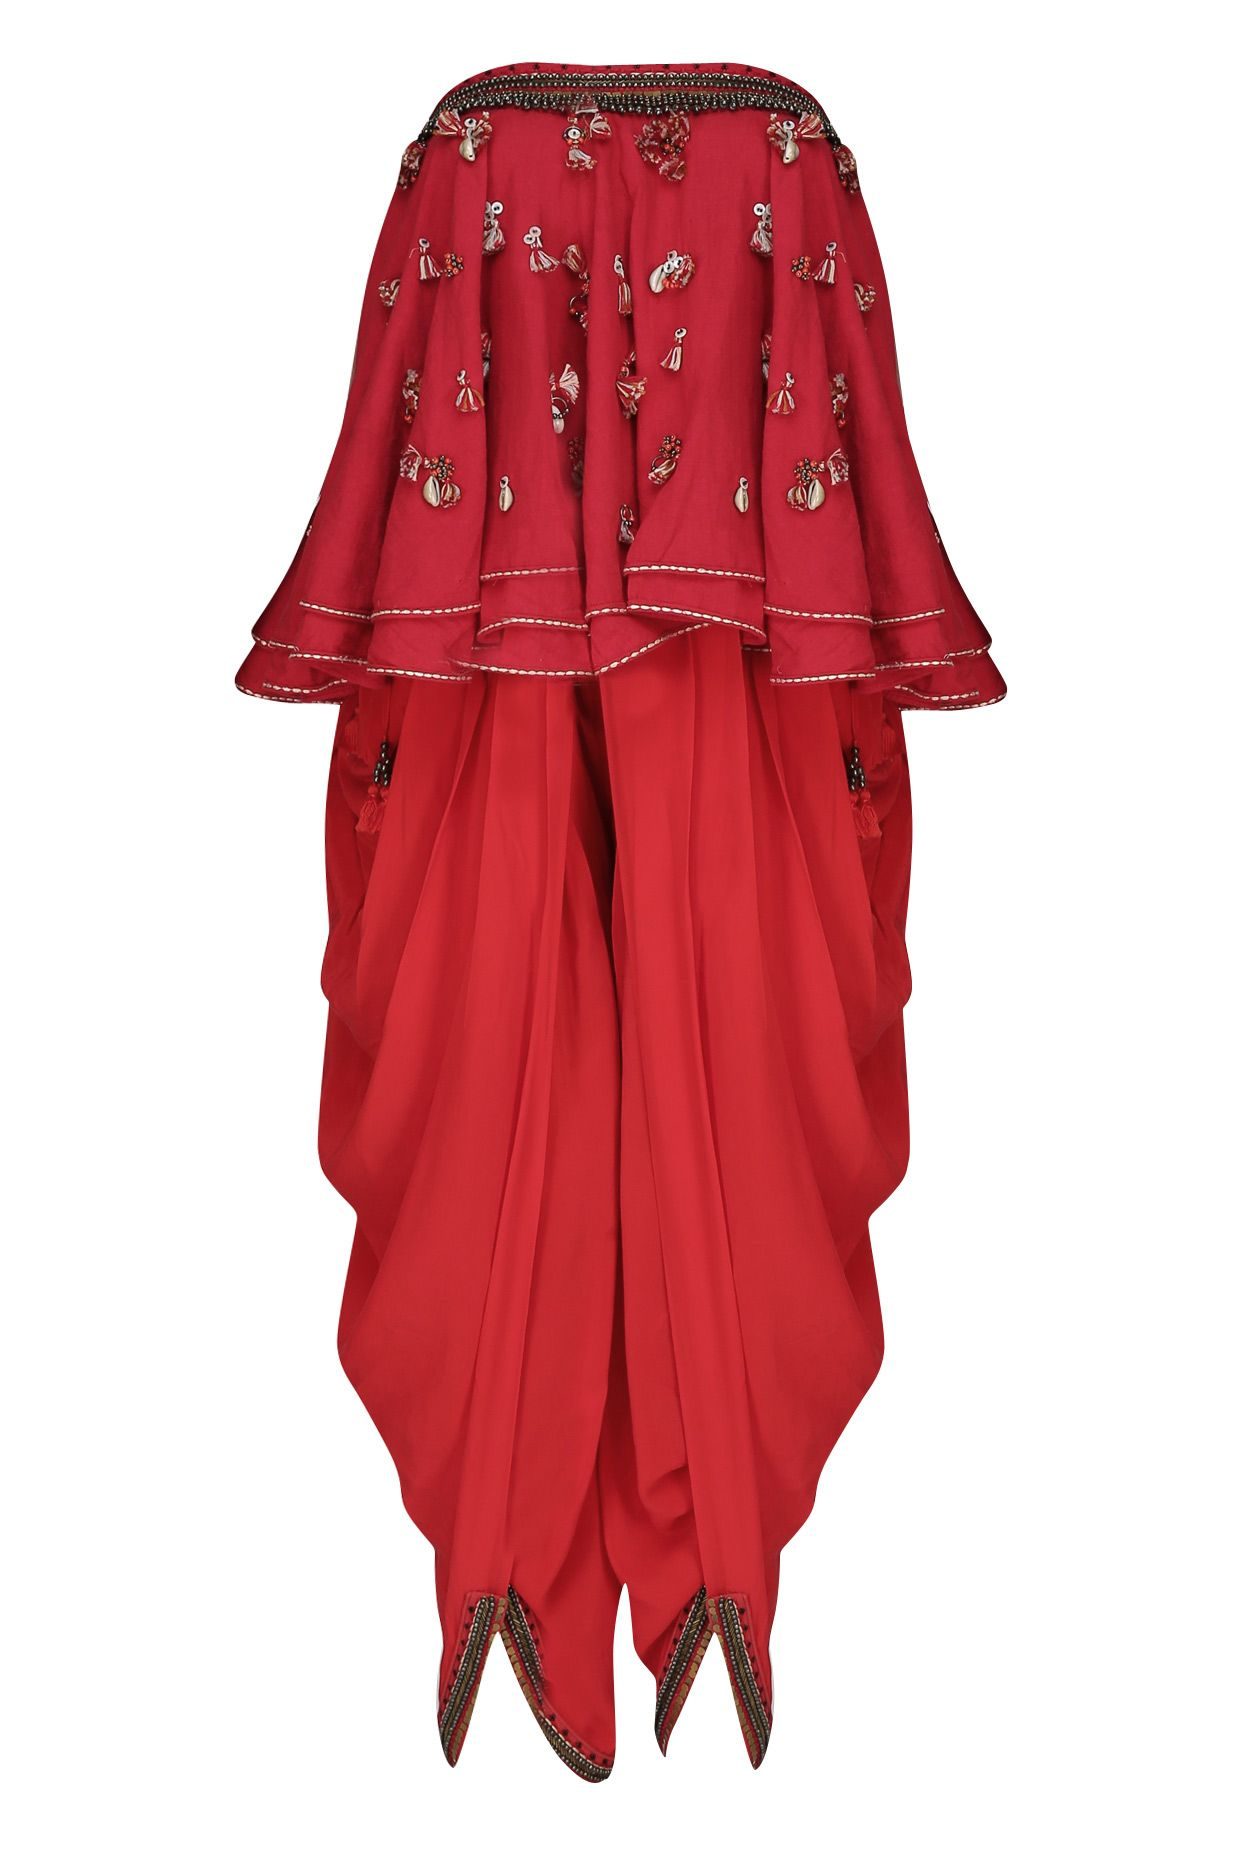 Kasum red embroidered tube kali top with cowl dhoti pants available only at Pernia's Pop Up Shop.